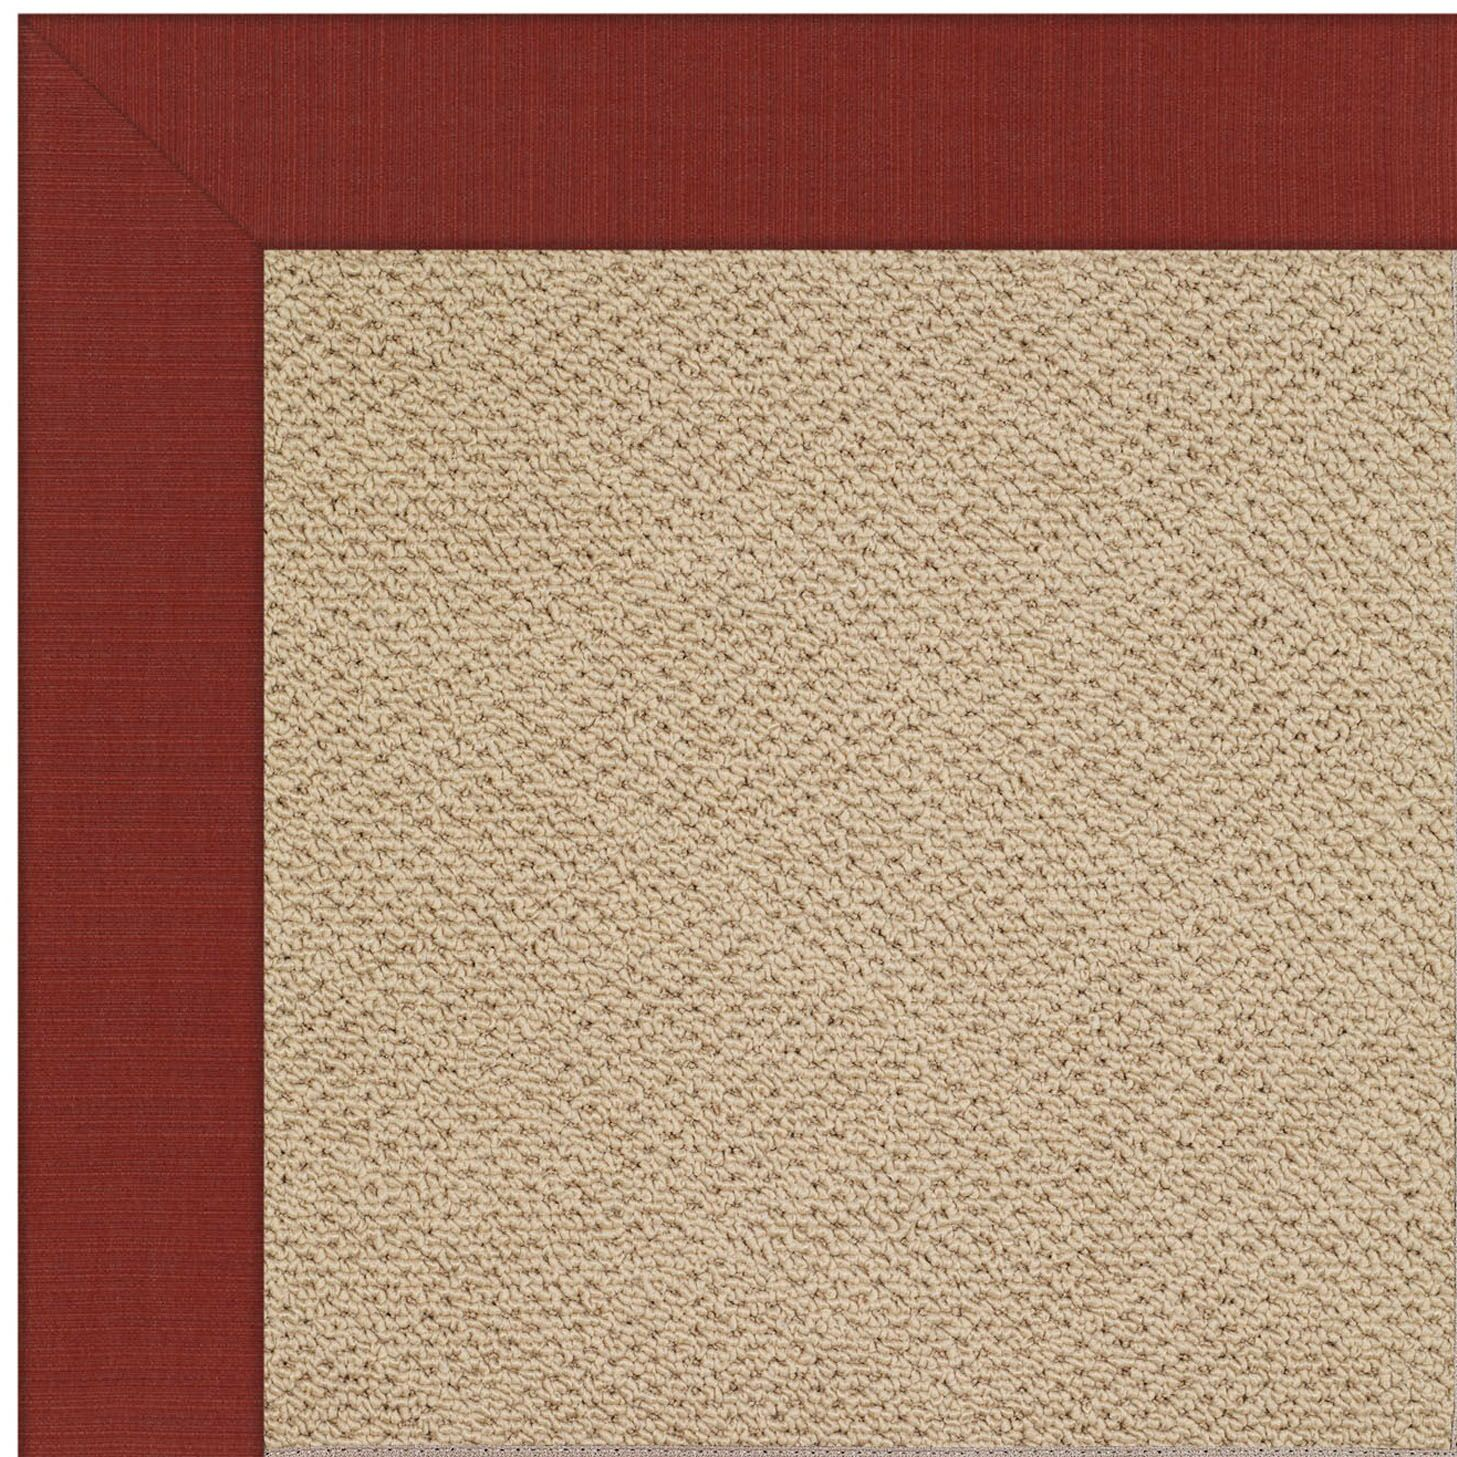 Lisle Beige Indoor/Outdoor Area Rug Rug Size: Rectangle 2' x 3'